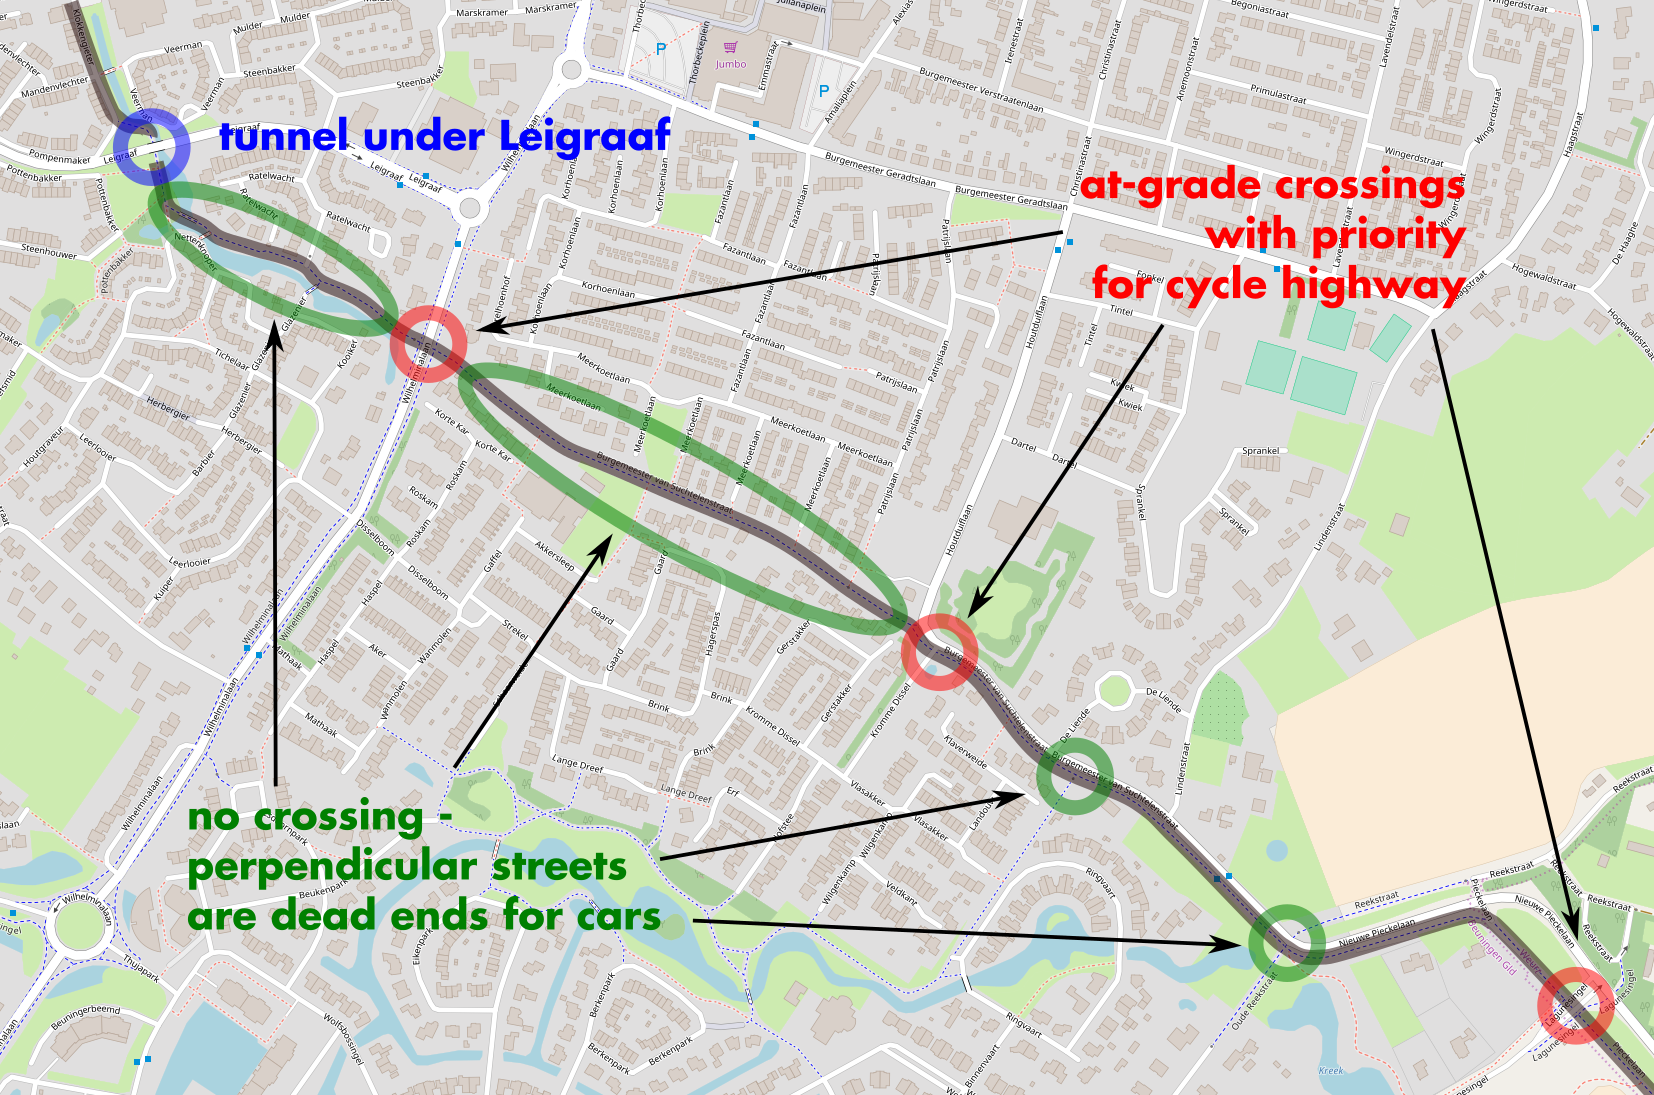 Cycle highway (grey line) and filtered permeability: cars can cross the cycle highway only in 4 places, pedestrians and cyclists have 10 additional local connections in between.